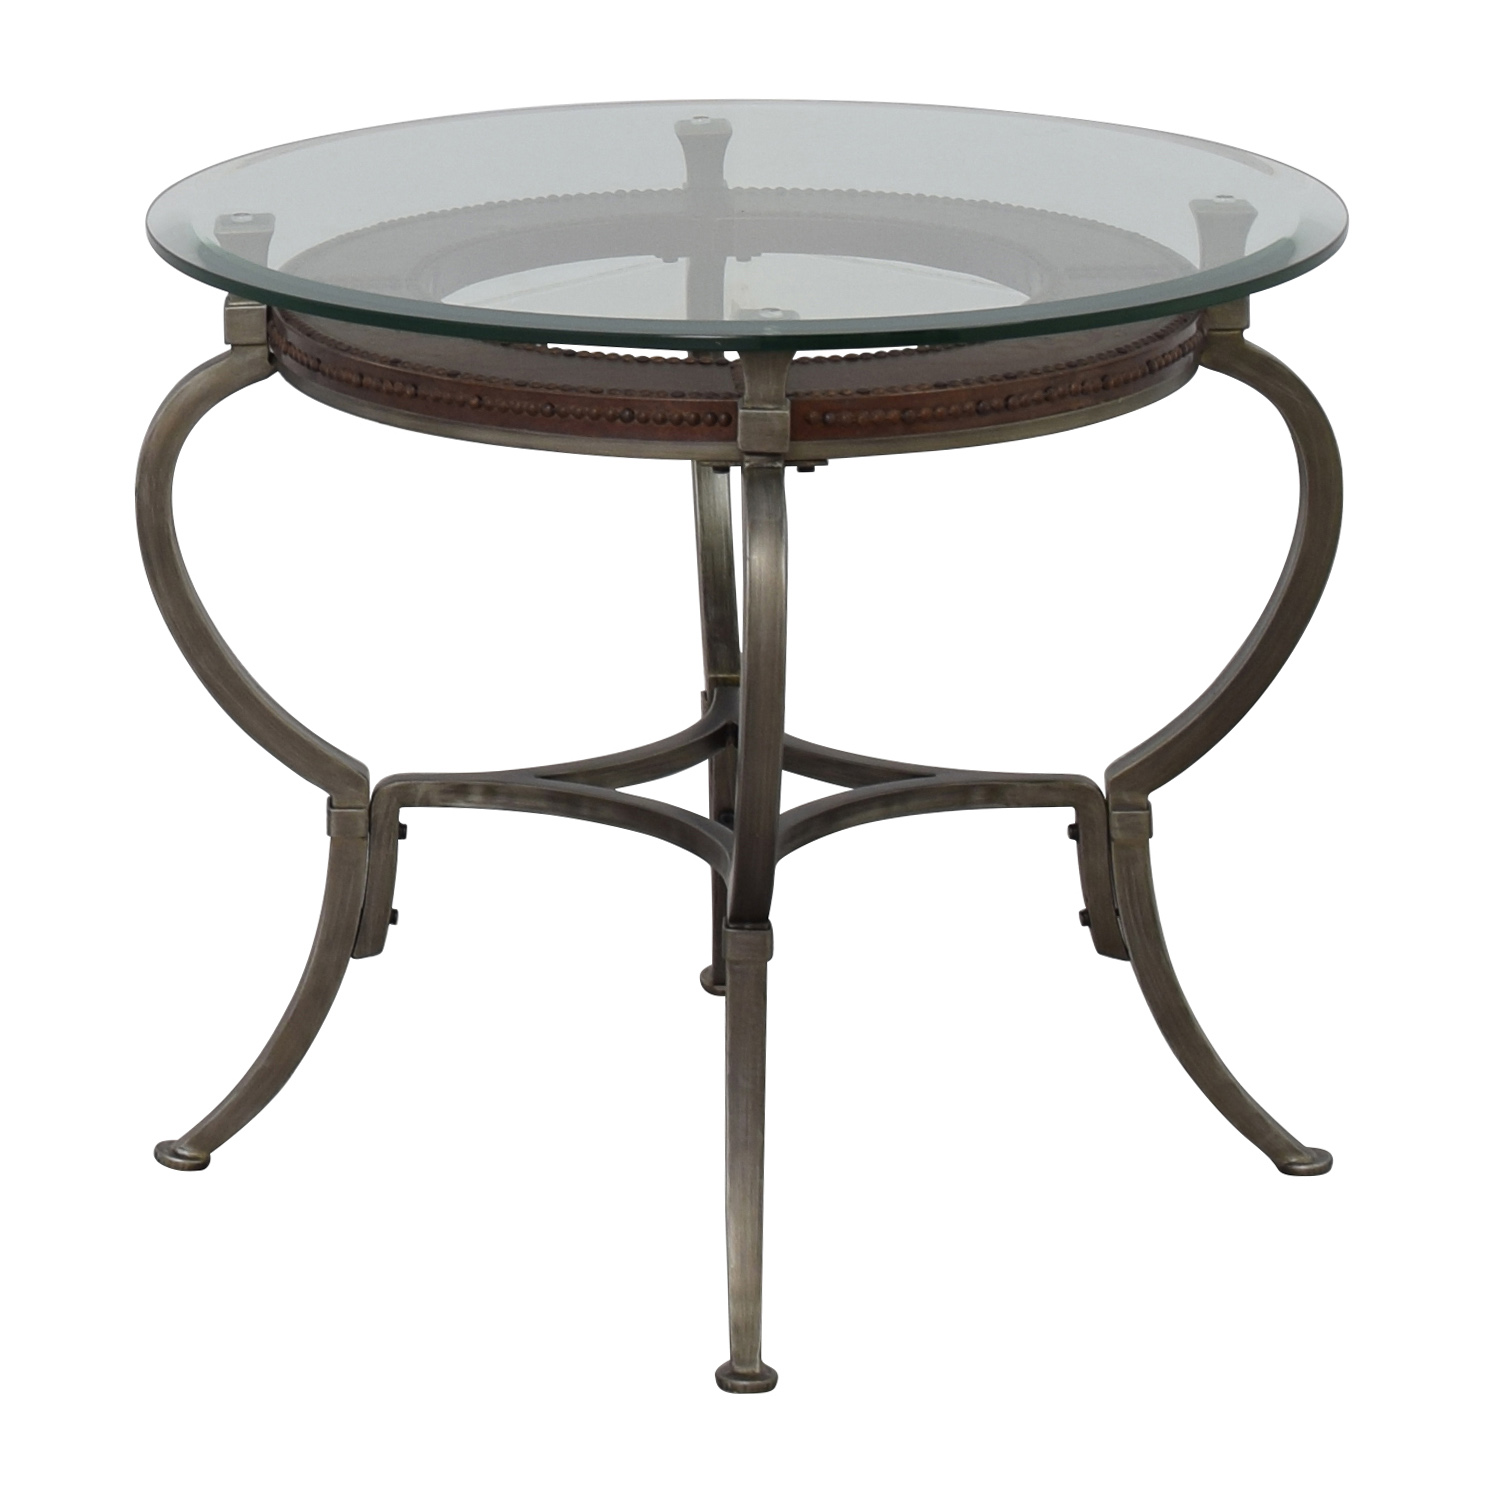 Round Glass Top End Tables 90 Off Macy 39s Macy 39s Artistica Round Glass And Metal